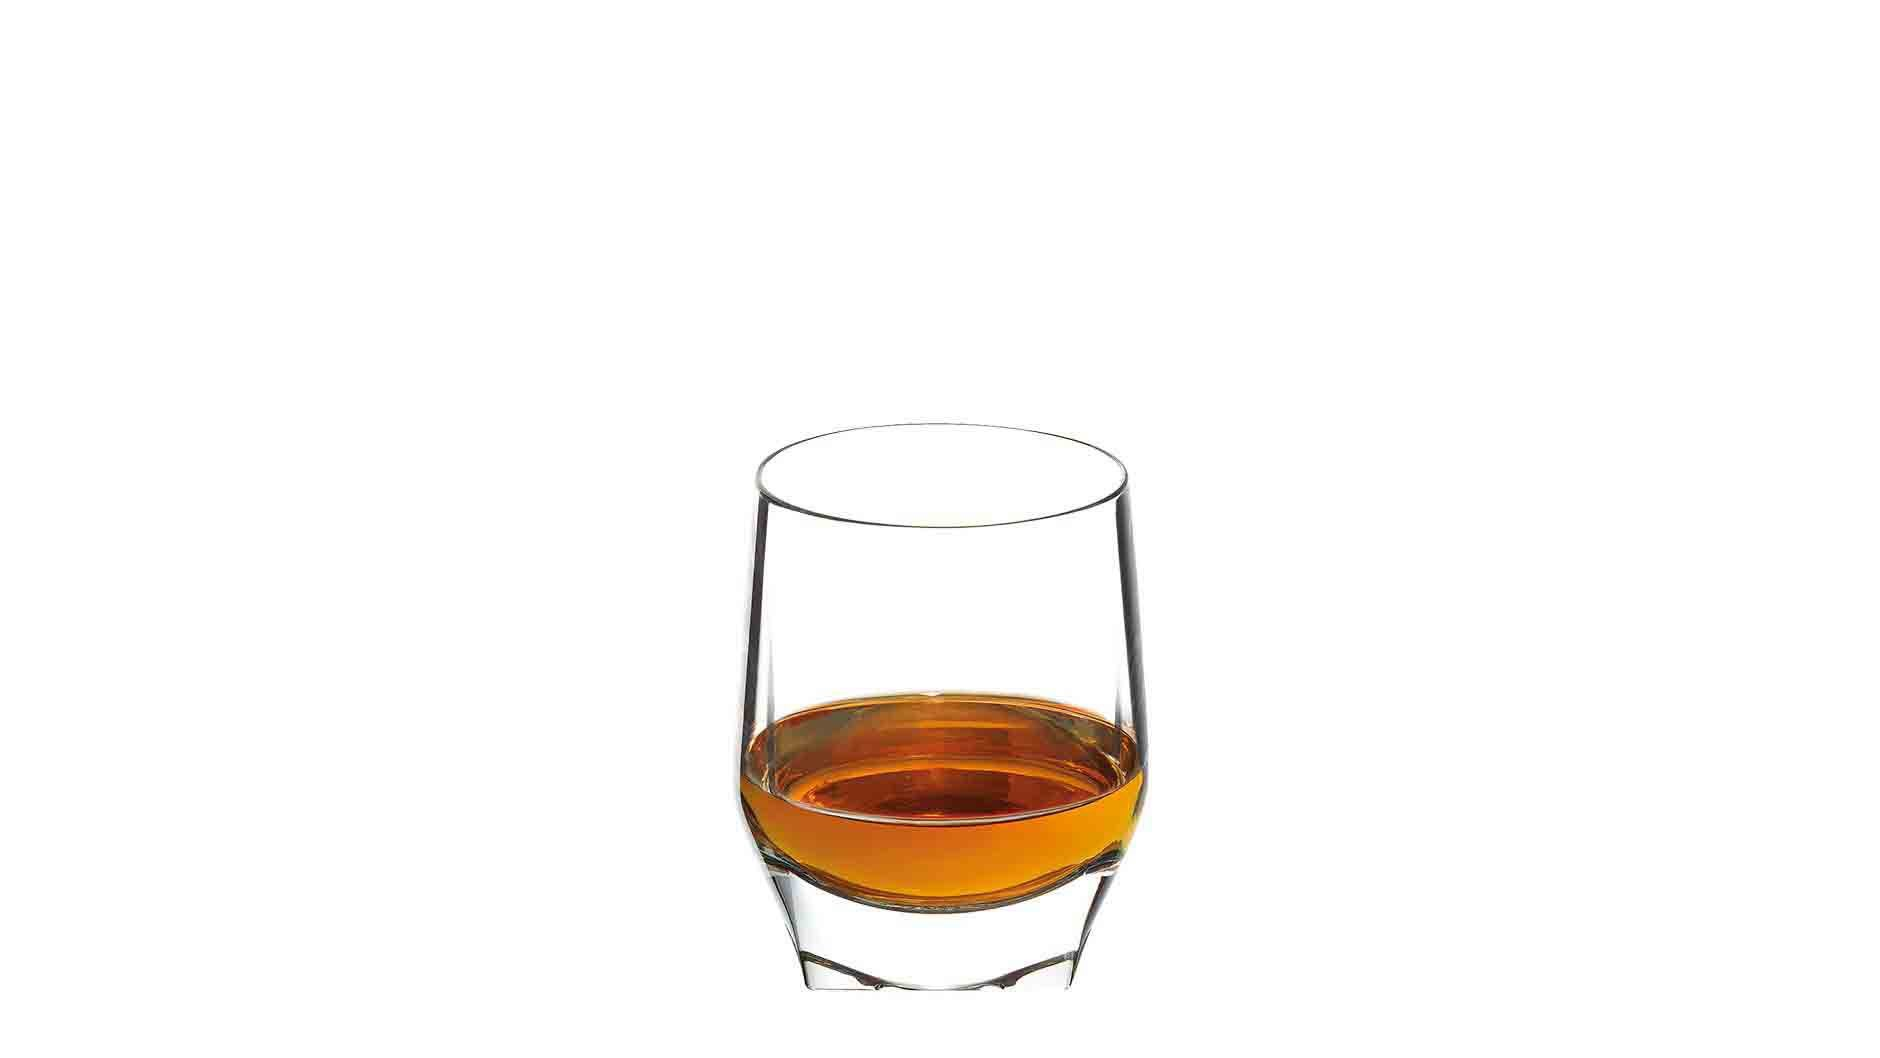 Forma ideal de servir Johnnie Walker Blue Label en un vaso de whisky